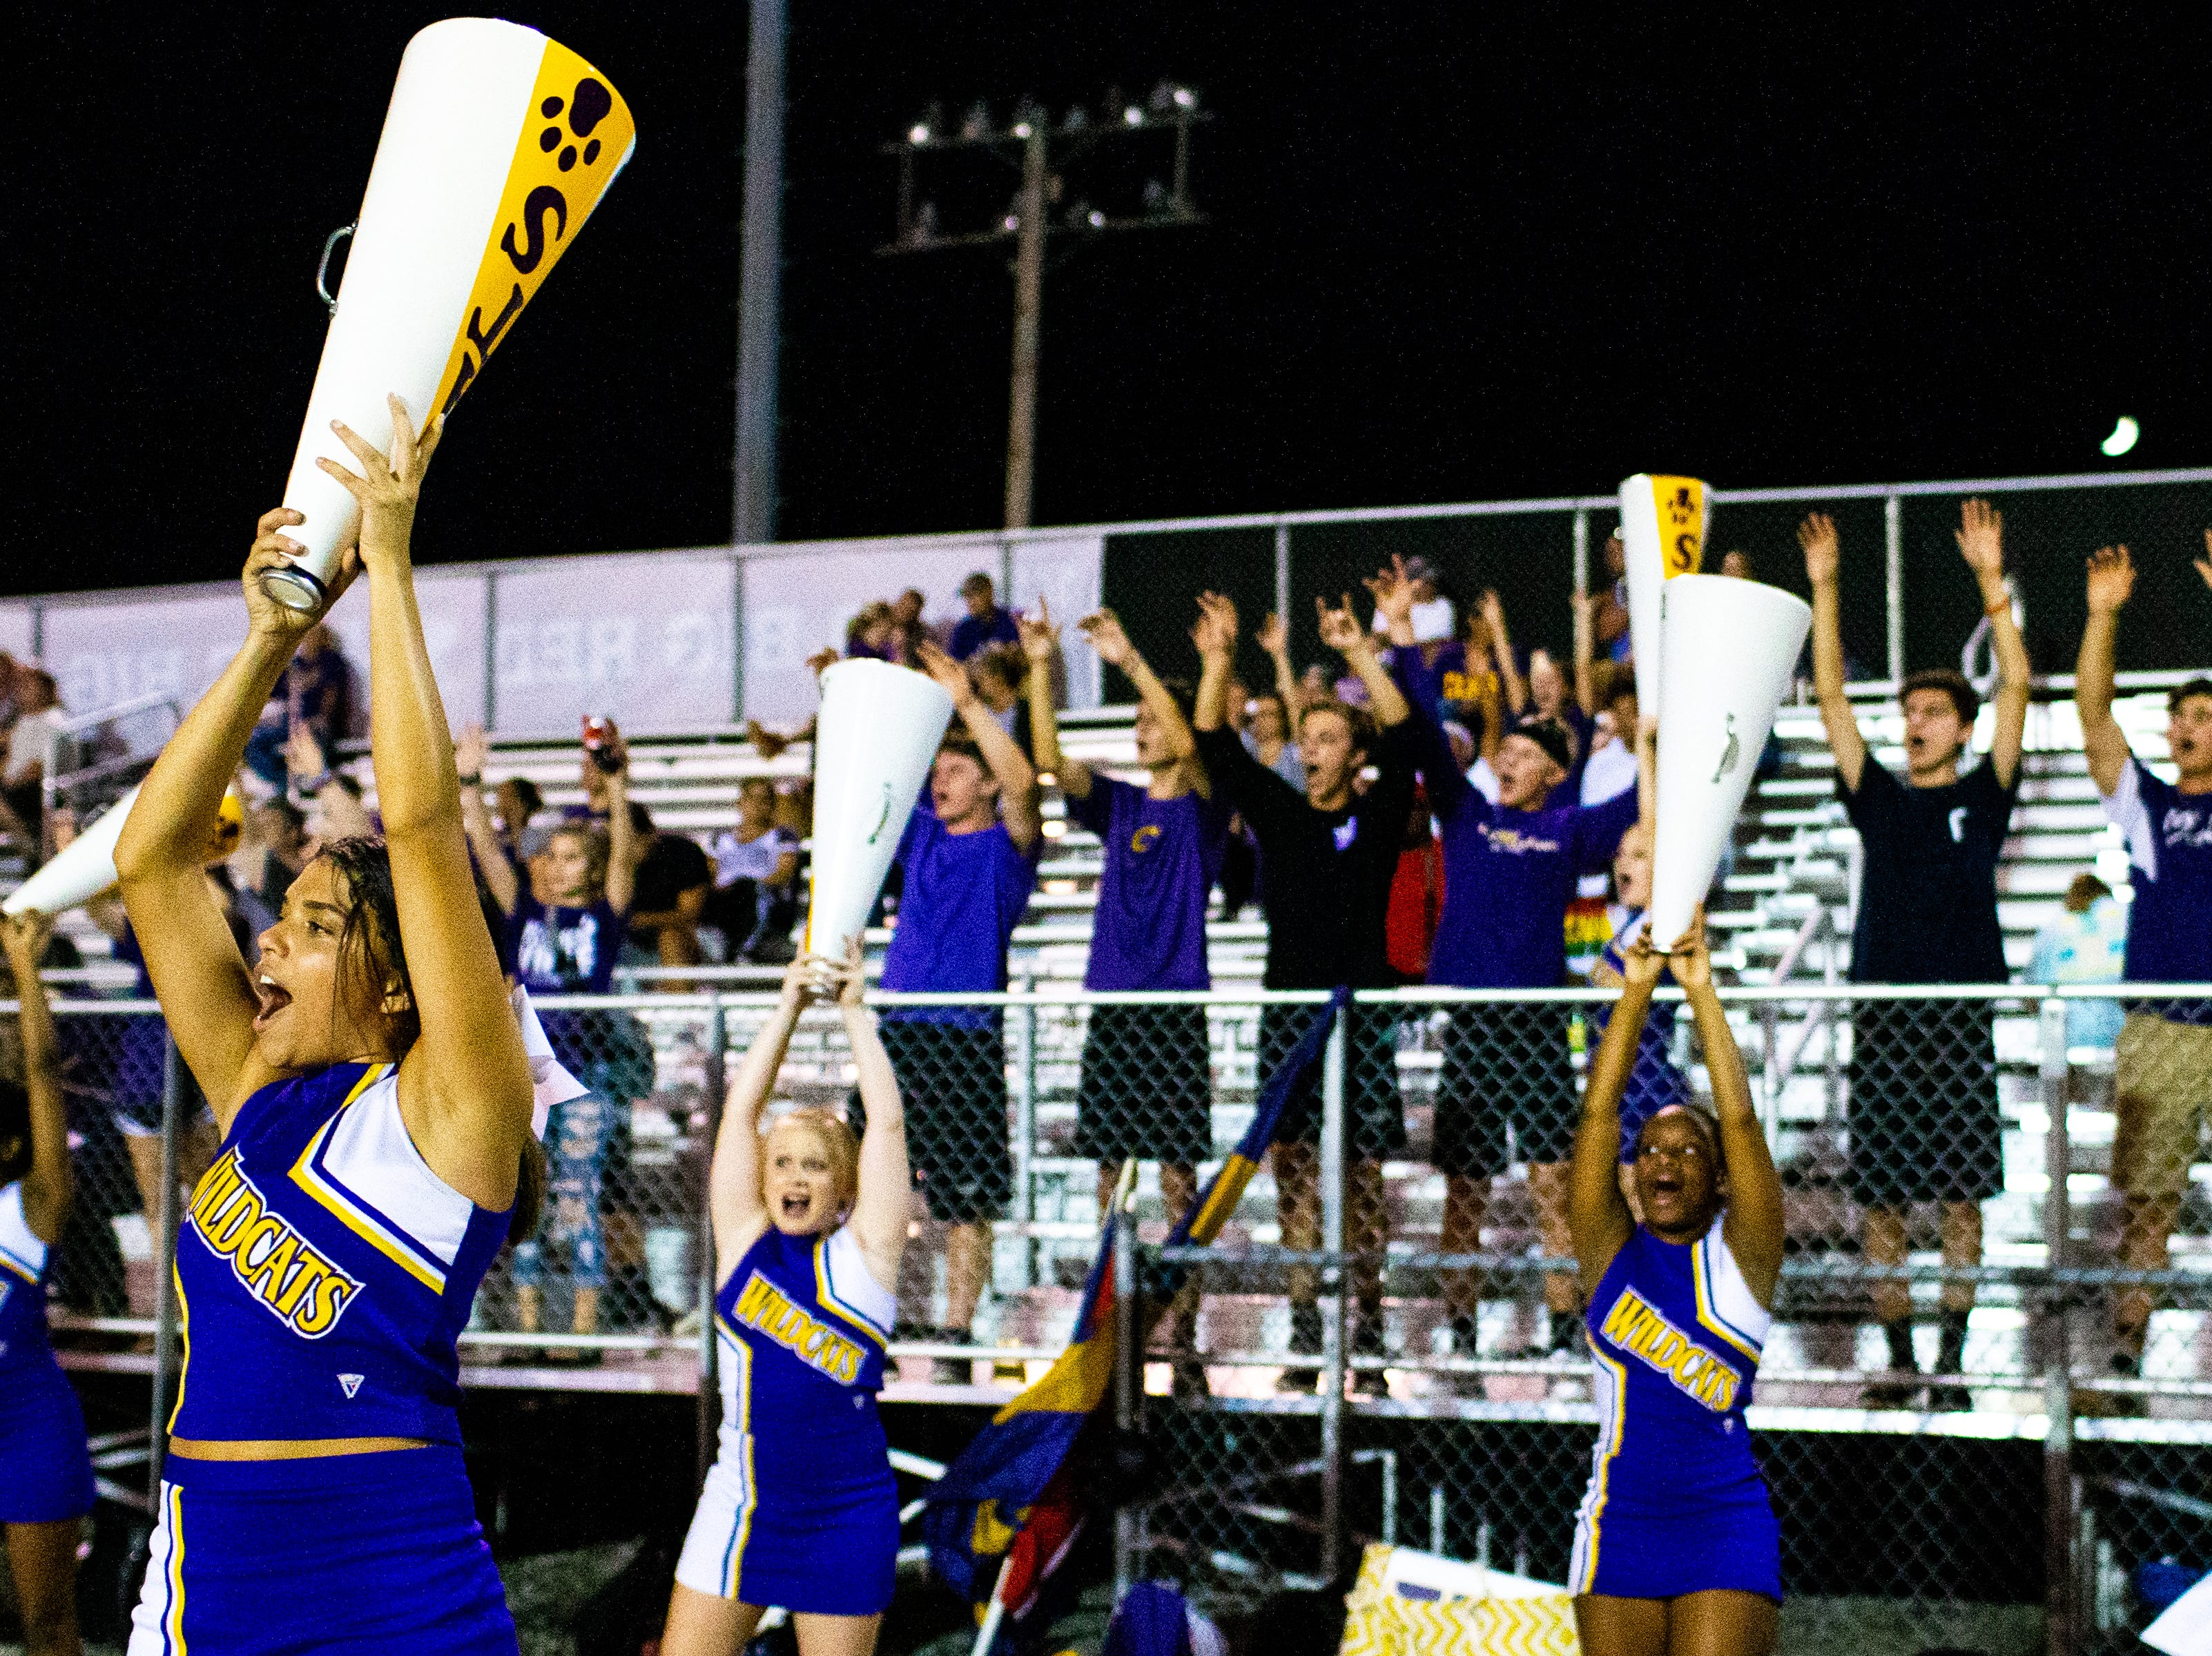 Clarksville High cheerleaders fire up the crowd during the second half at Henry County Friday, Sept. 14, 2018, in Paris, Tenn.